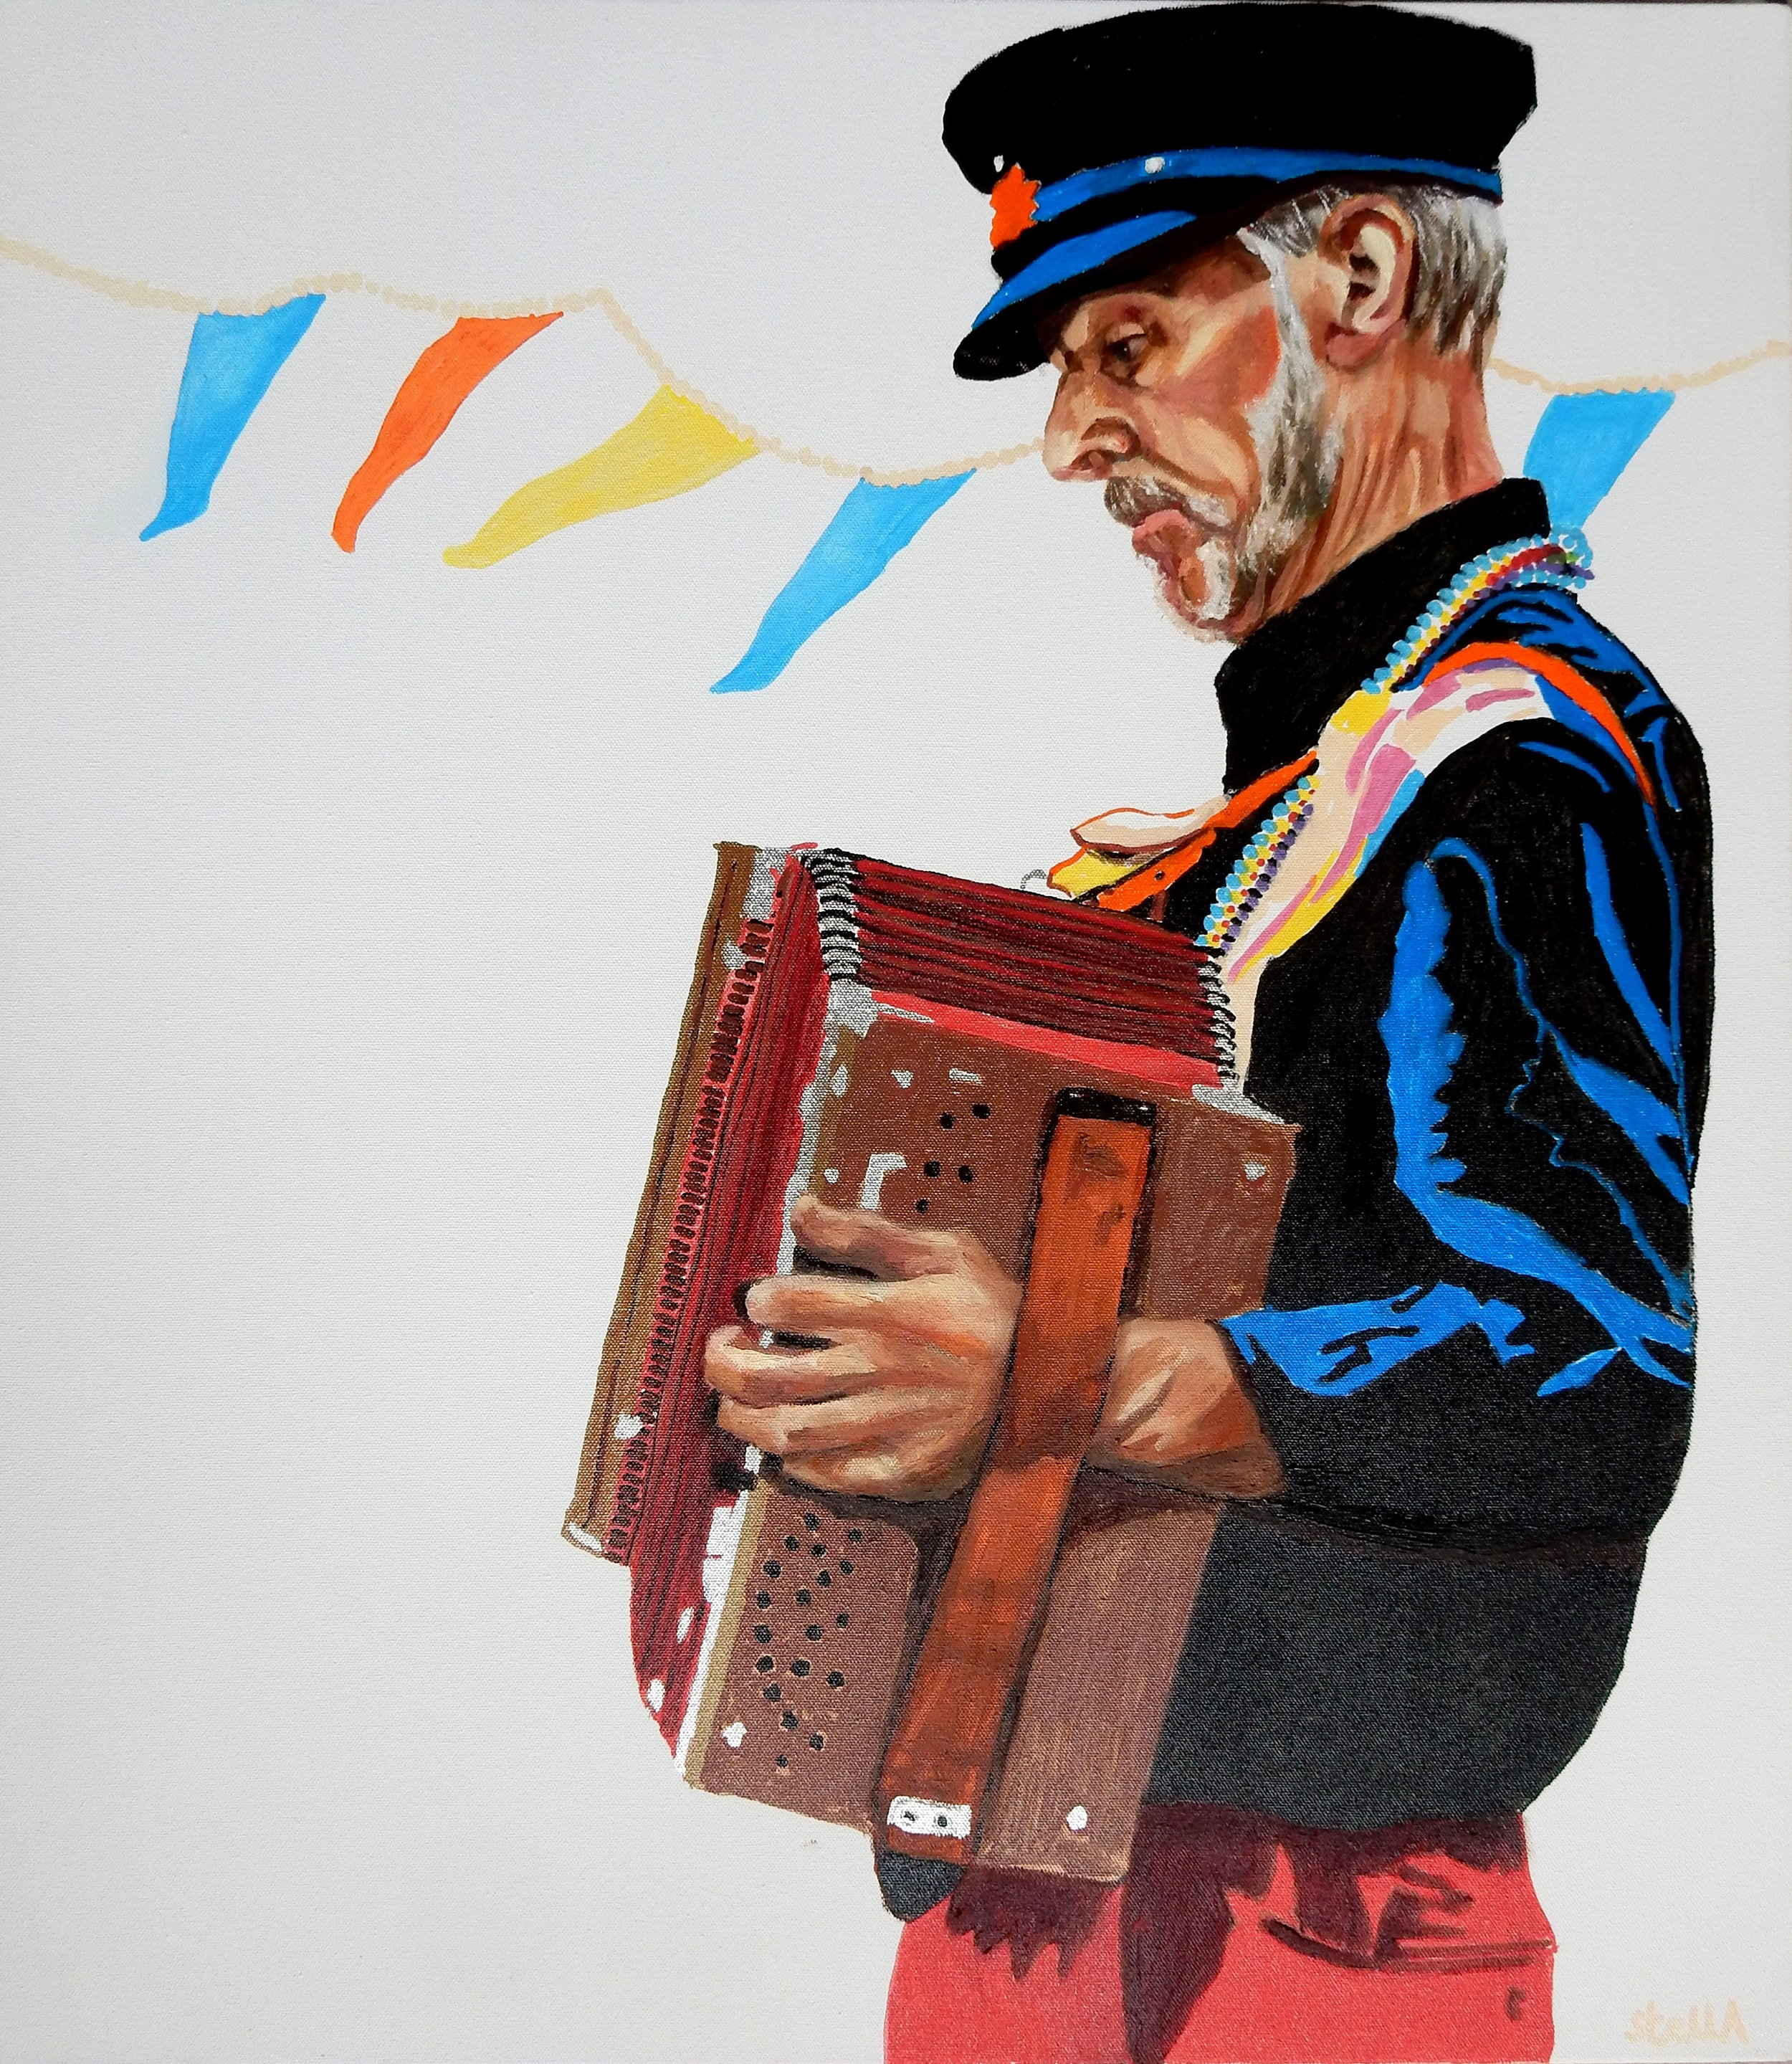 Accordionist - Leigh on Sea Folk Festival